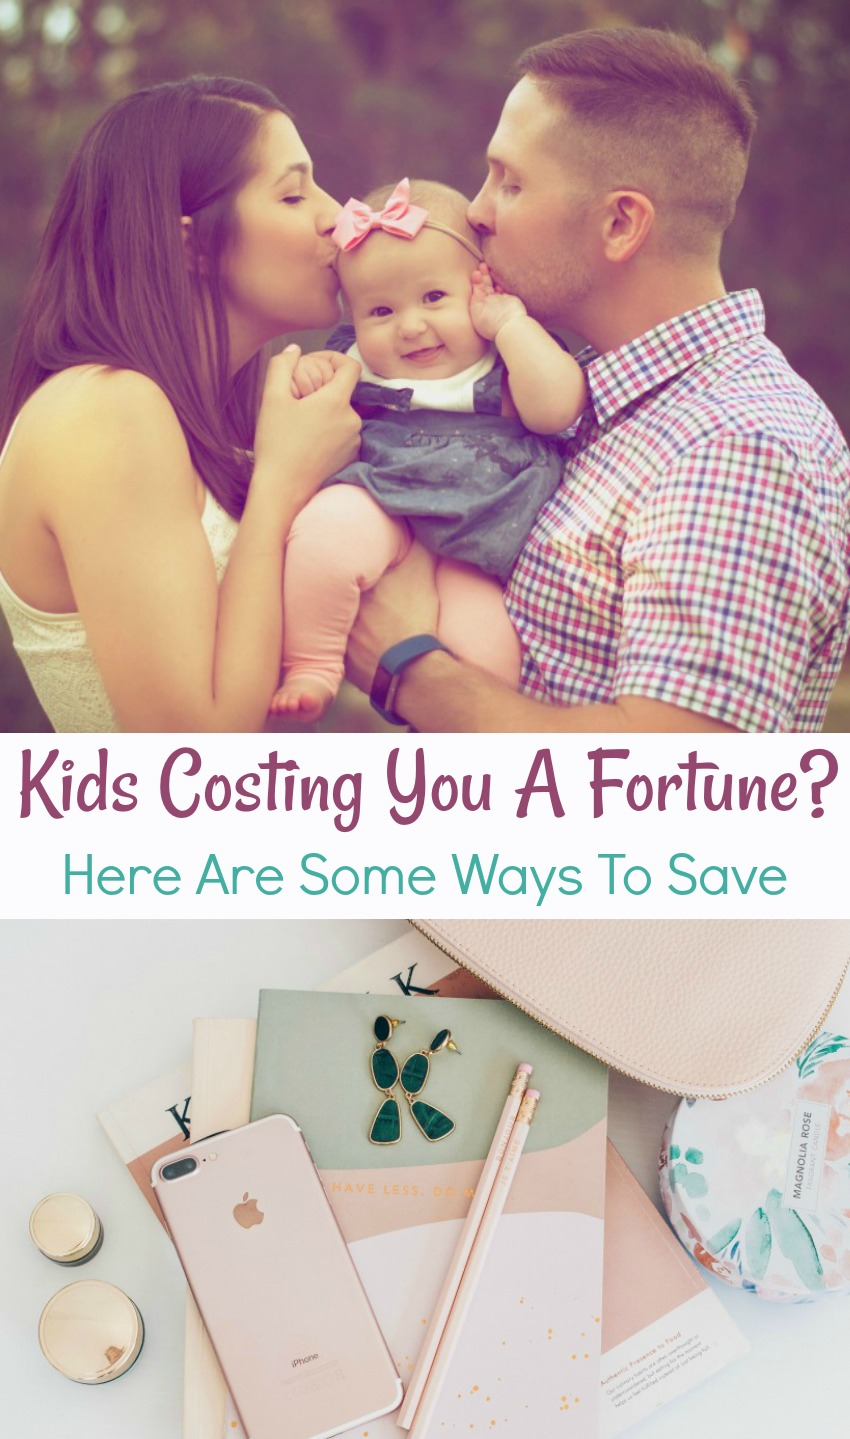 Kids Costing You A Fortune? Here Are Some Ways To Save